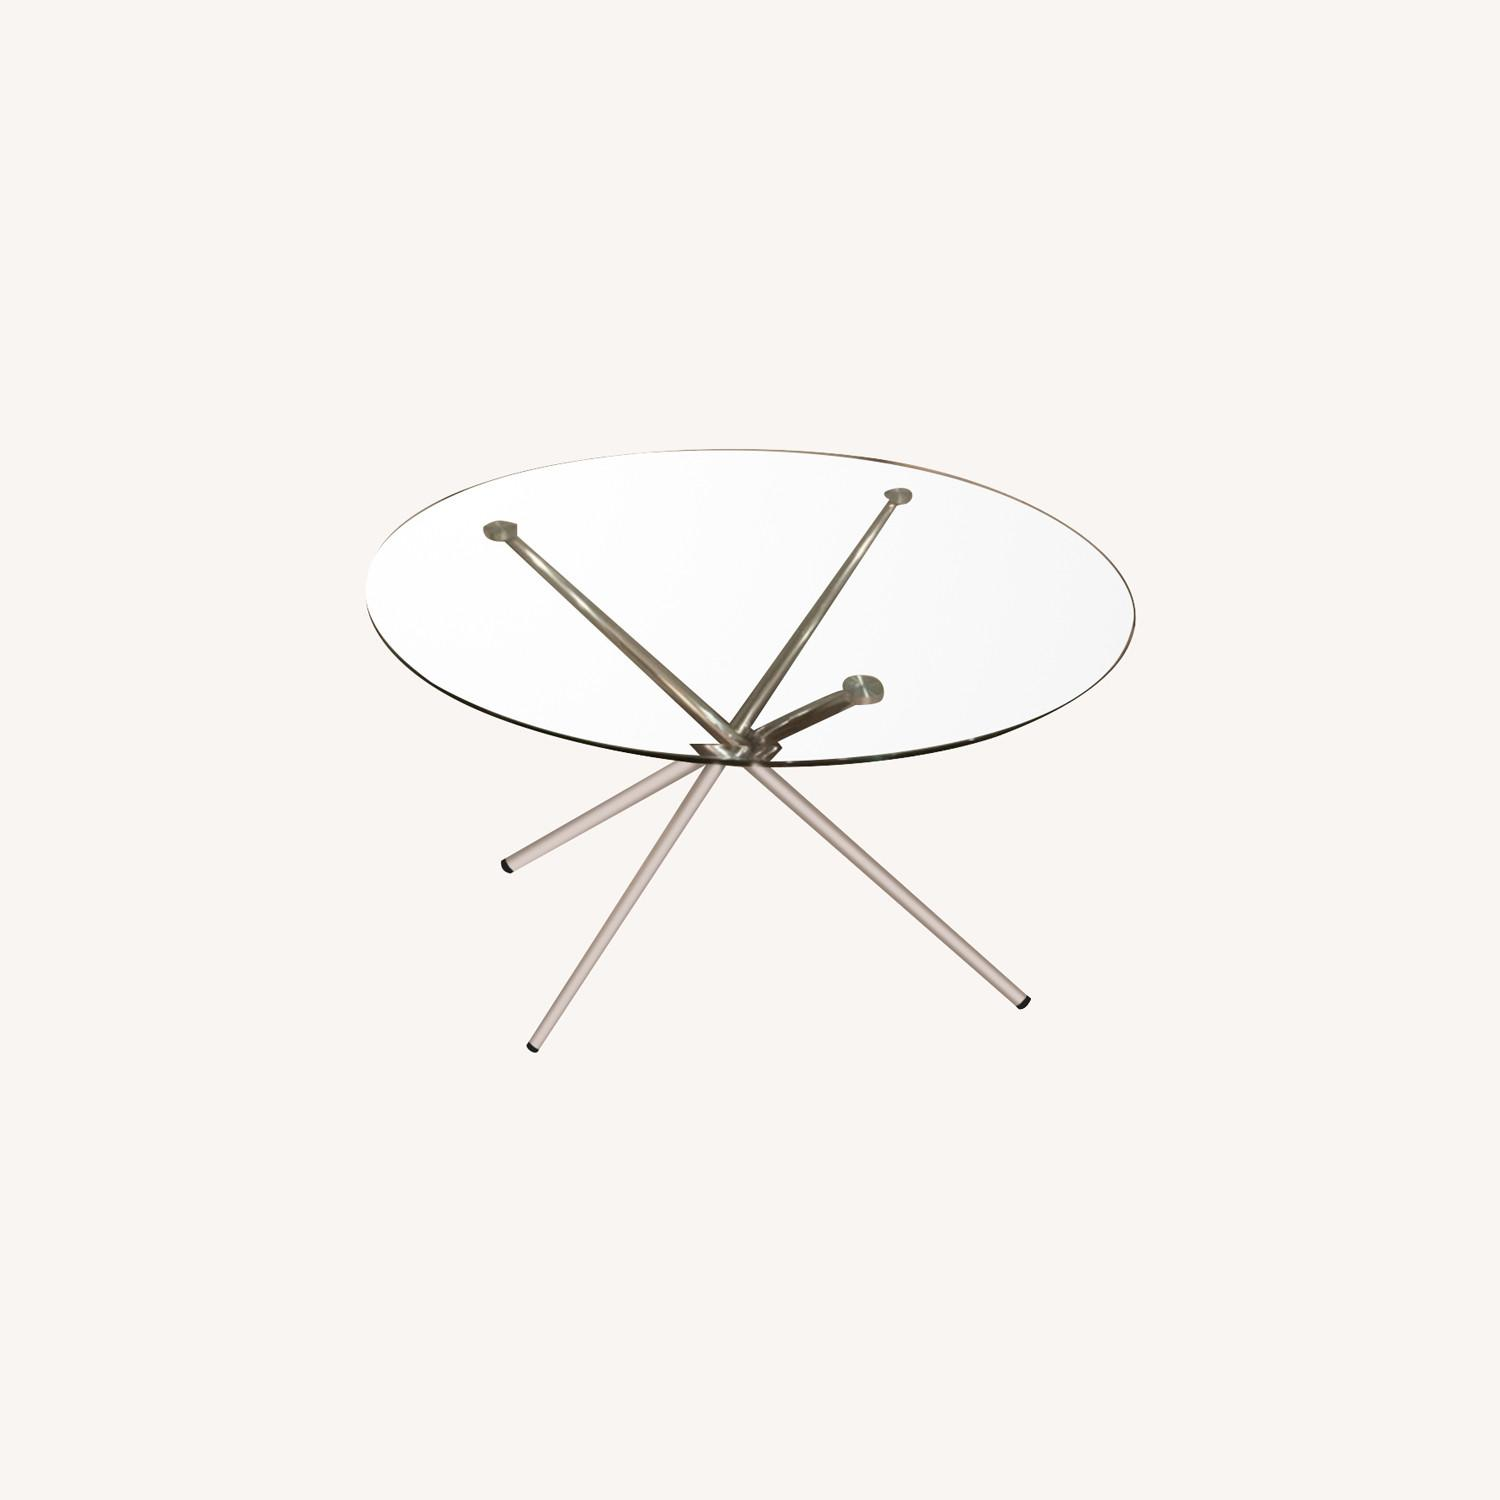 Raymour & Flanigan Round Glass Modern Dining Table - image-0